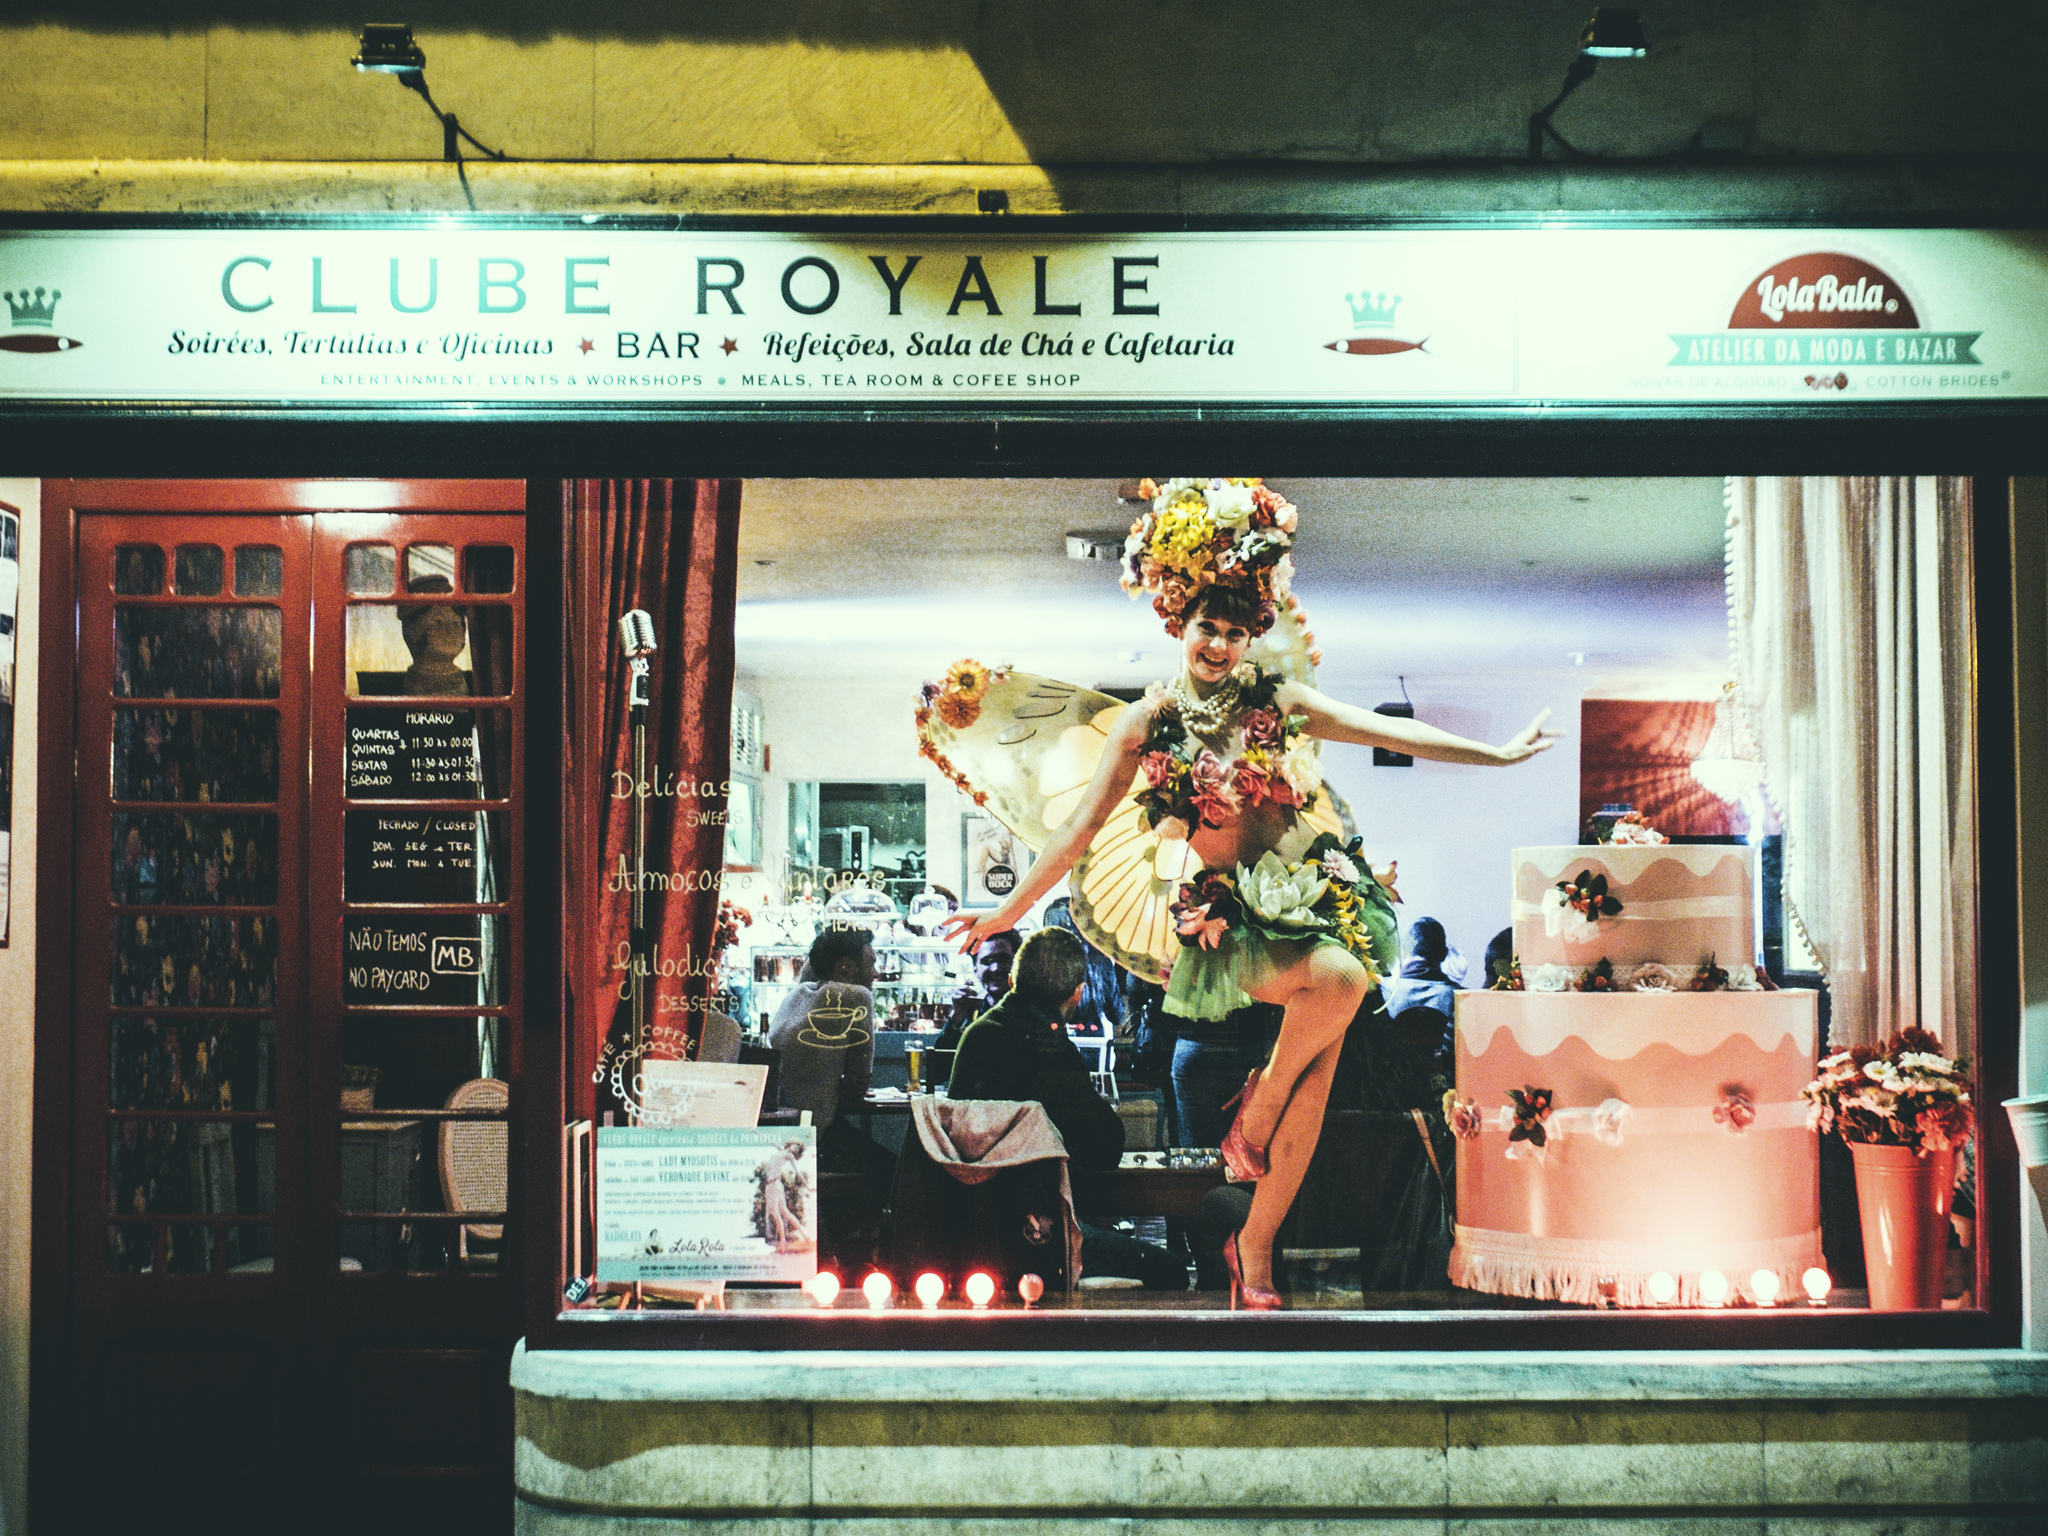 Clube Royale